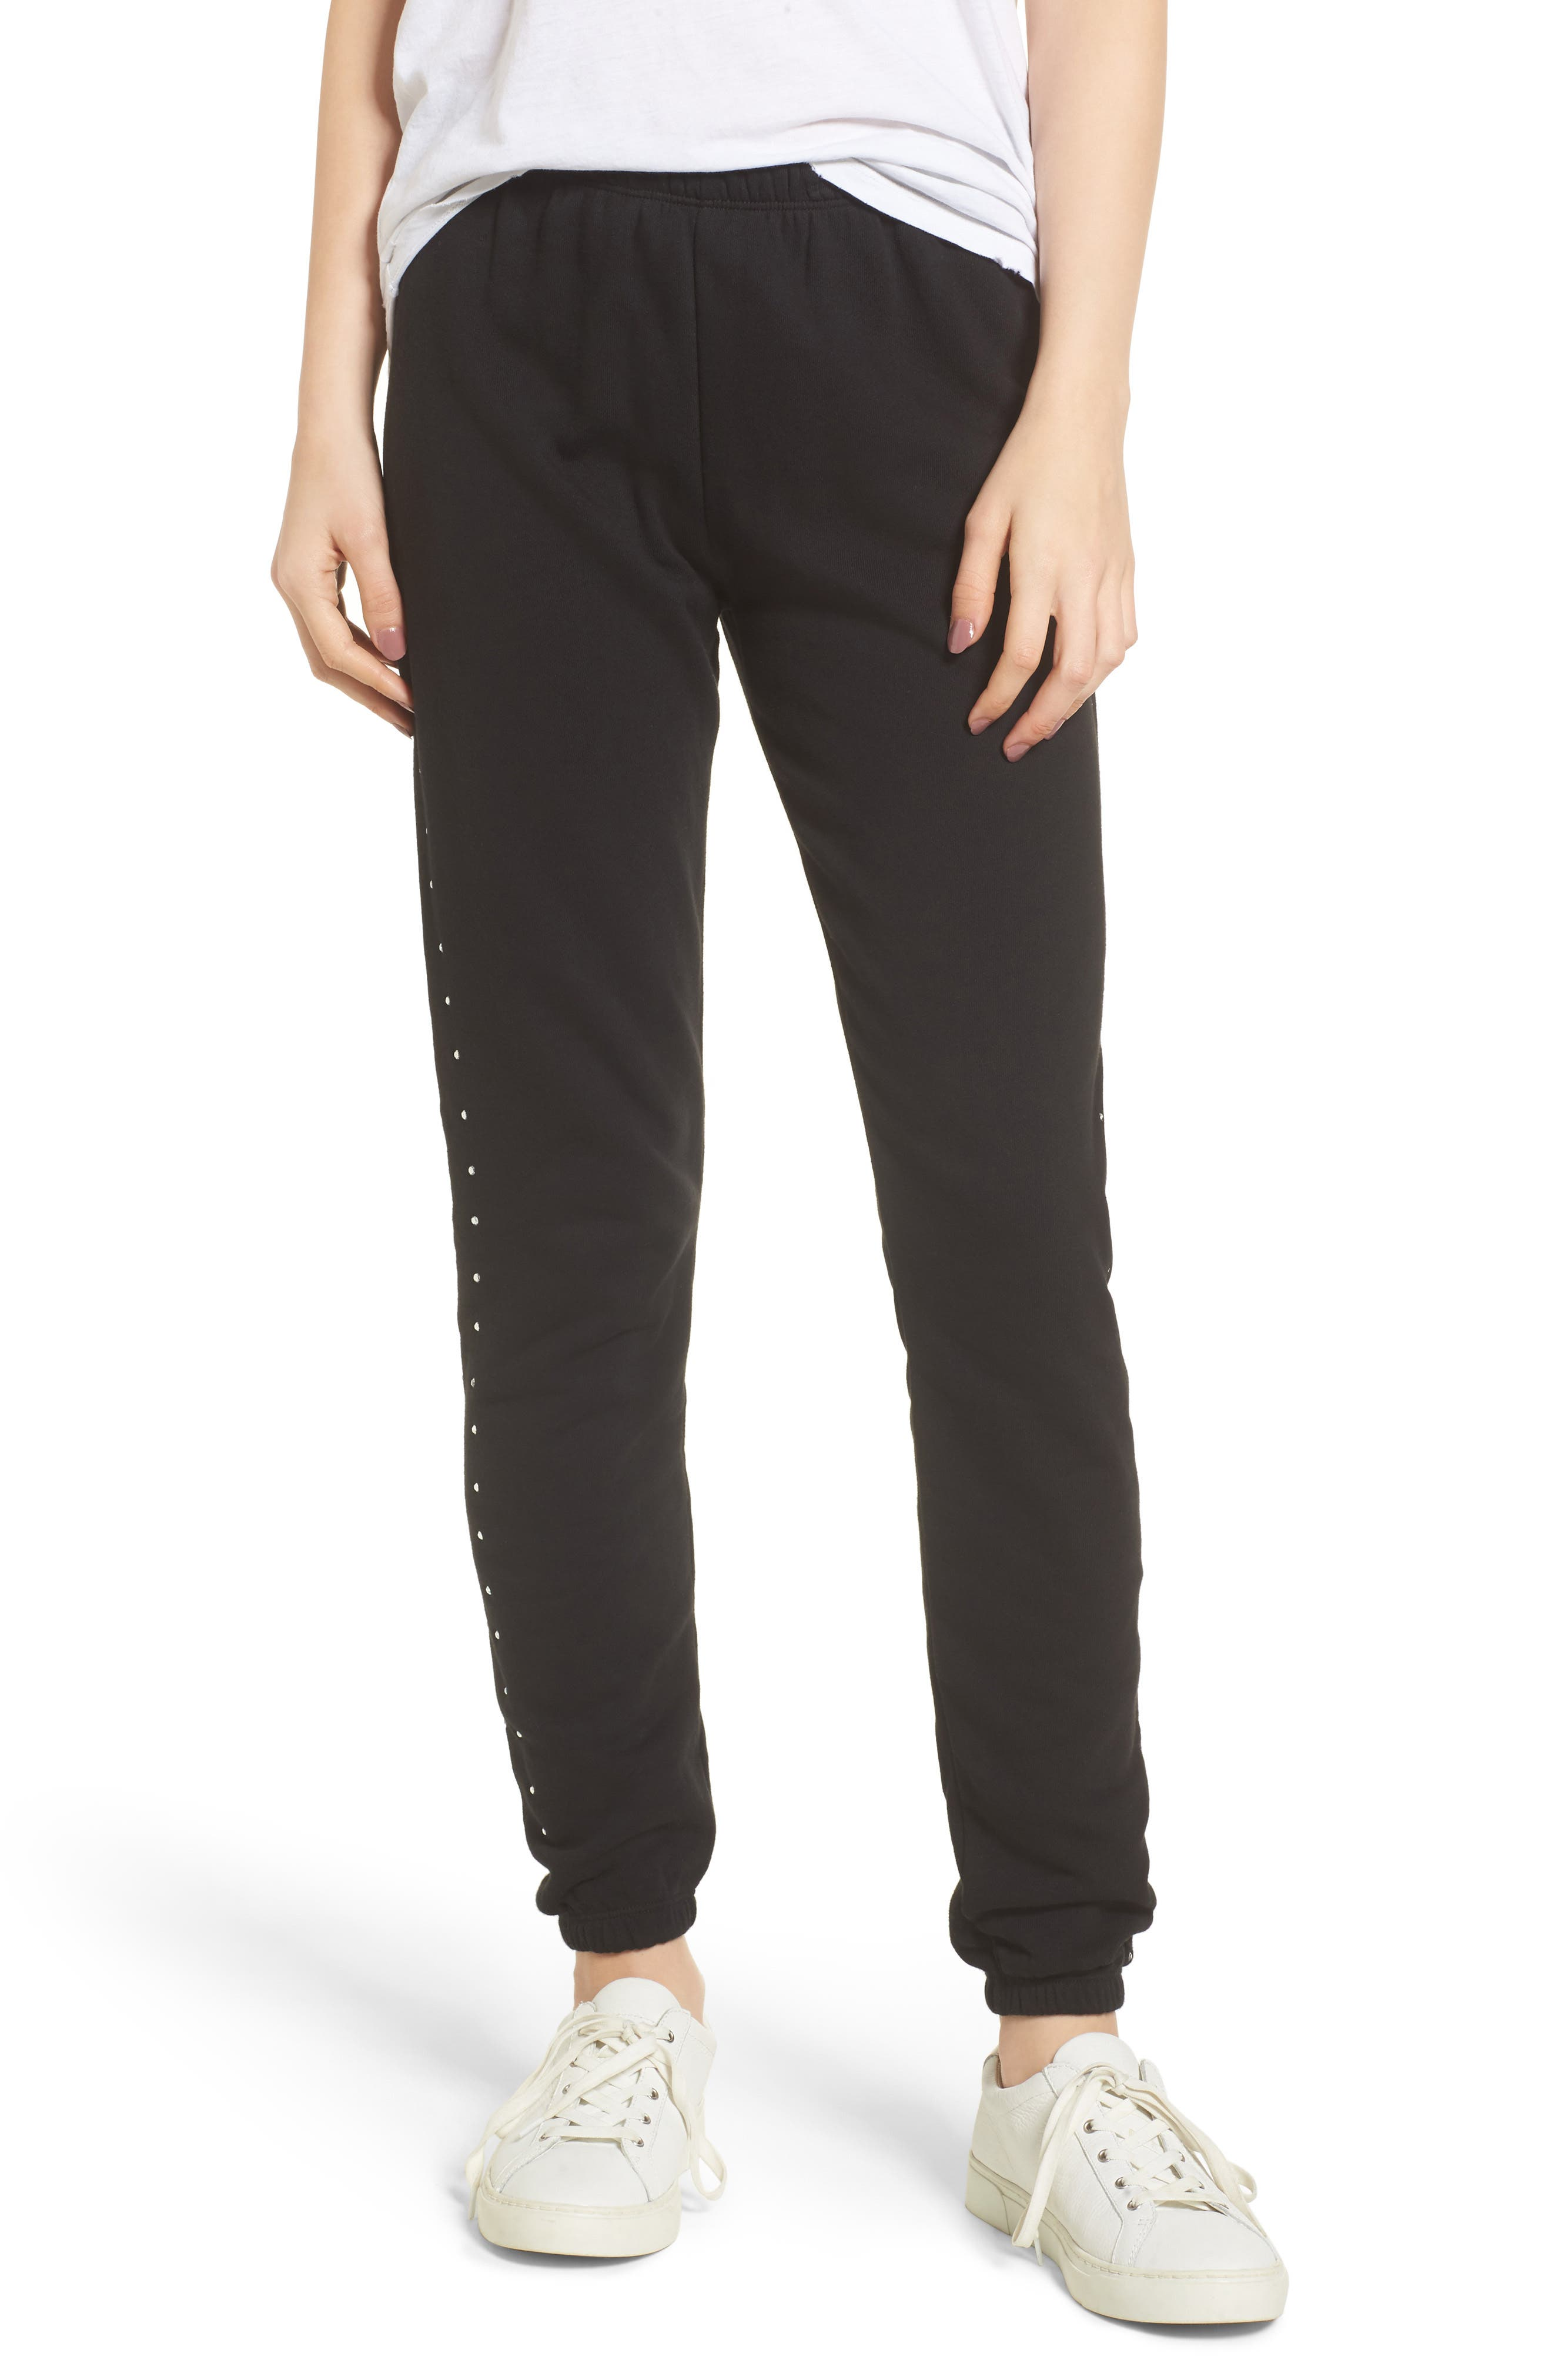 Glitz Sweatpants,                             Main thumbnail 1, color,